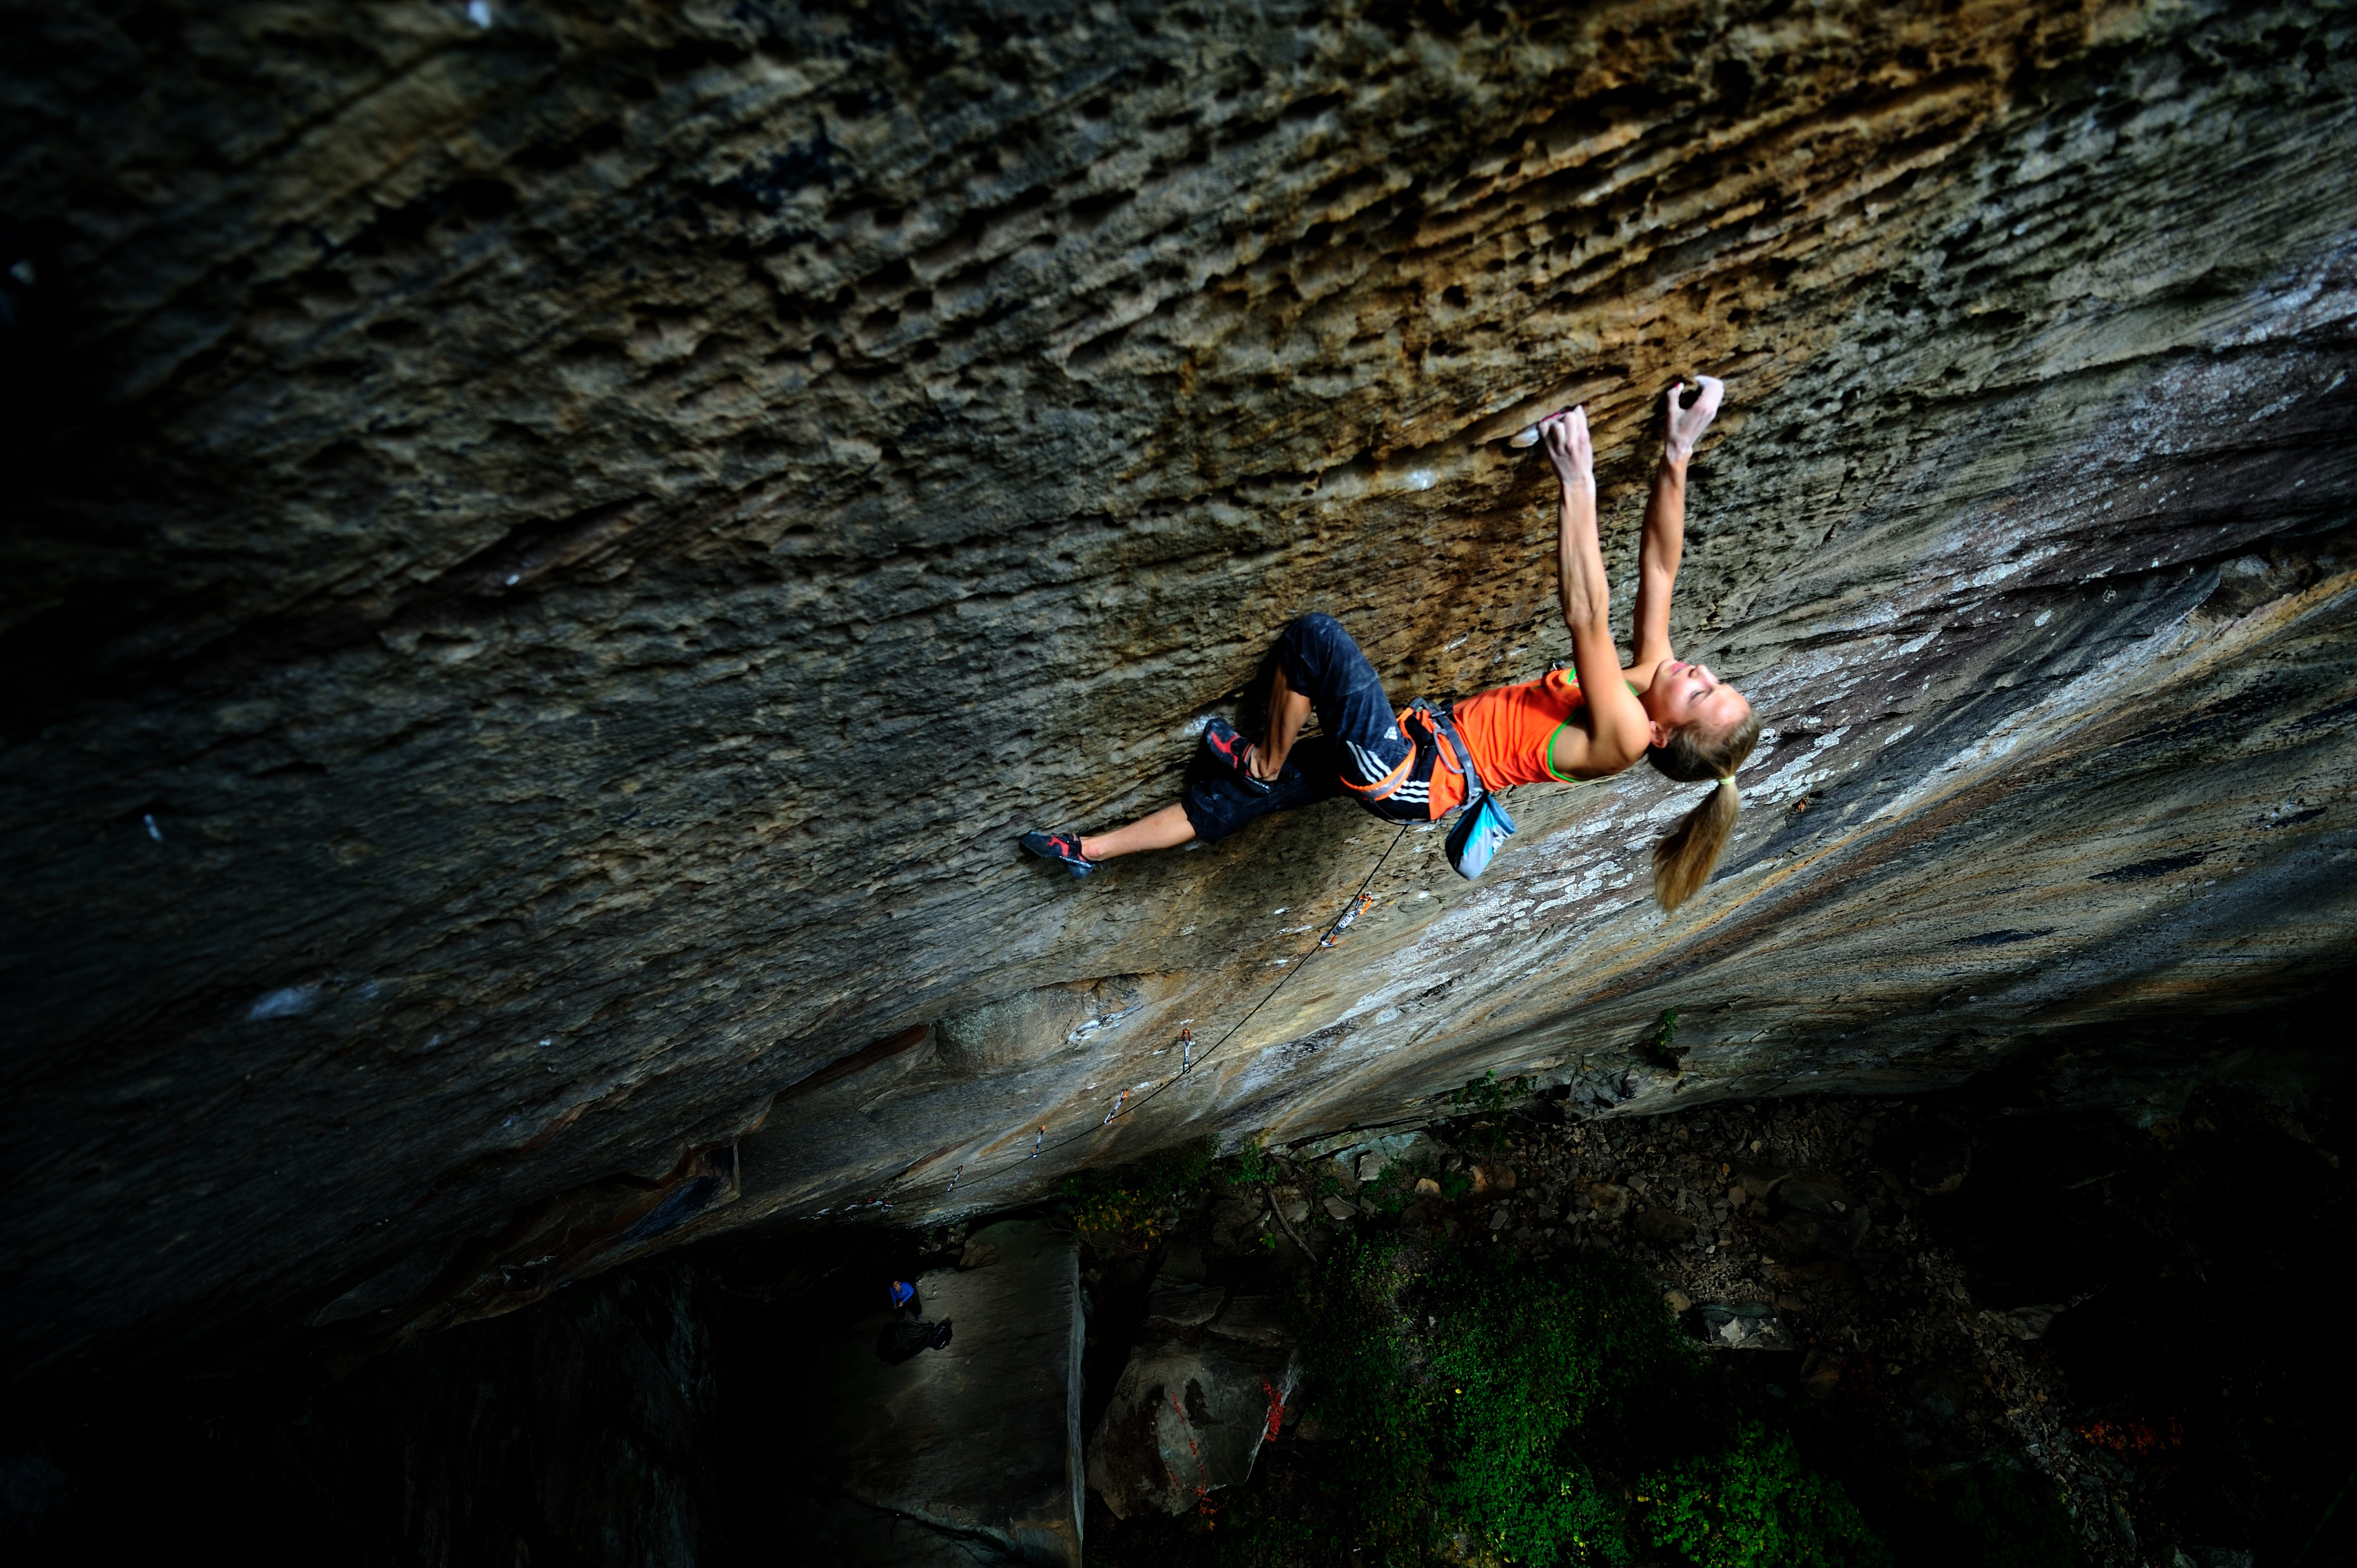 Climber Sasha Digiulian Aims To Be First Woman To Climb